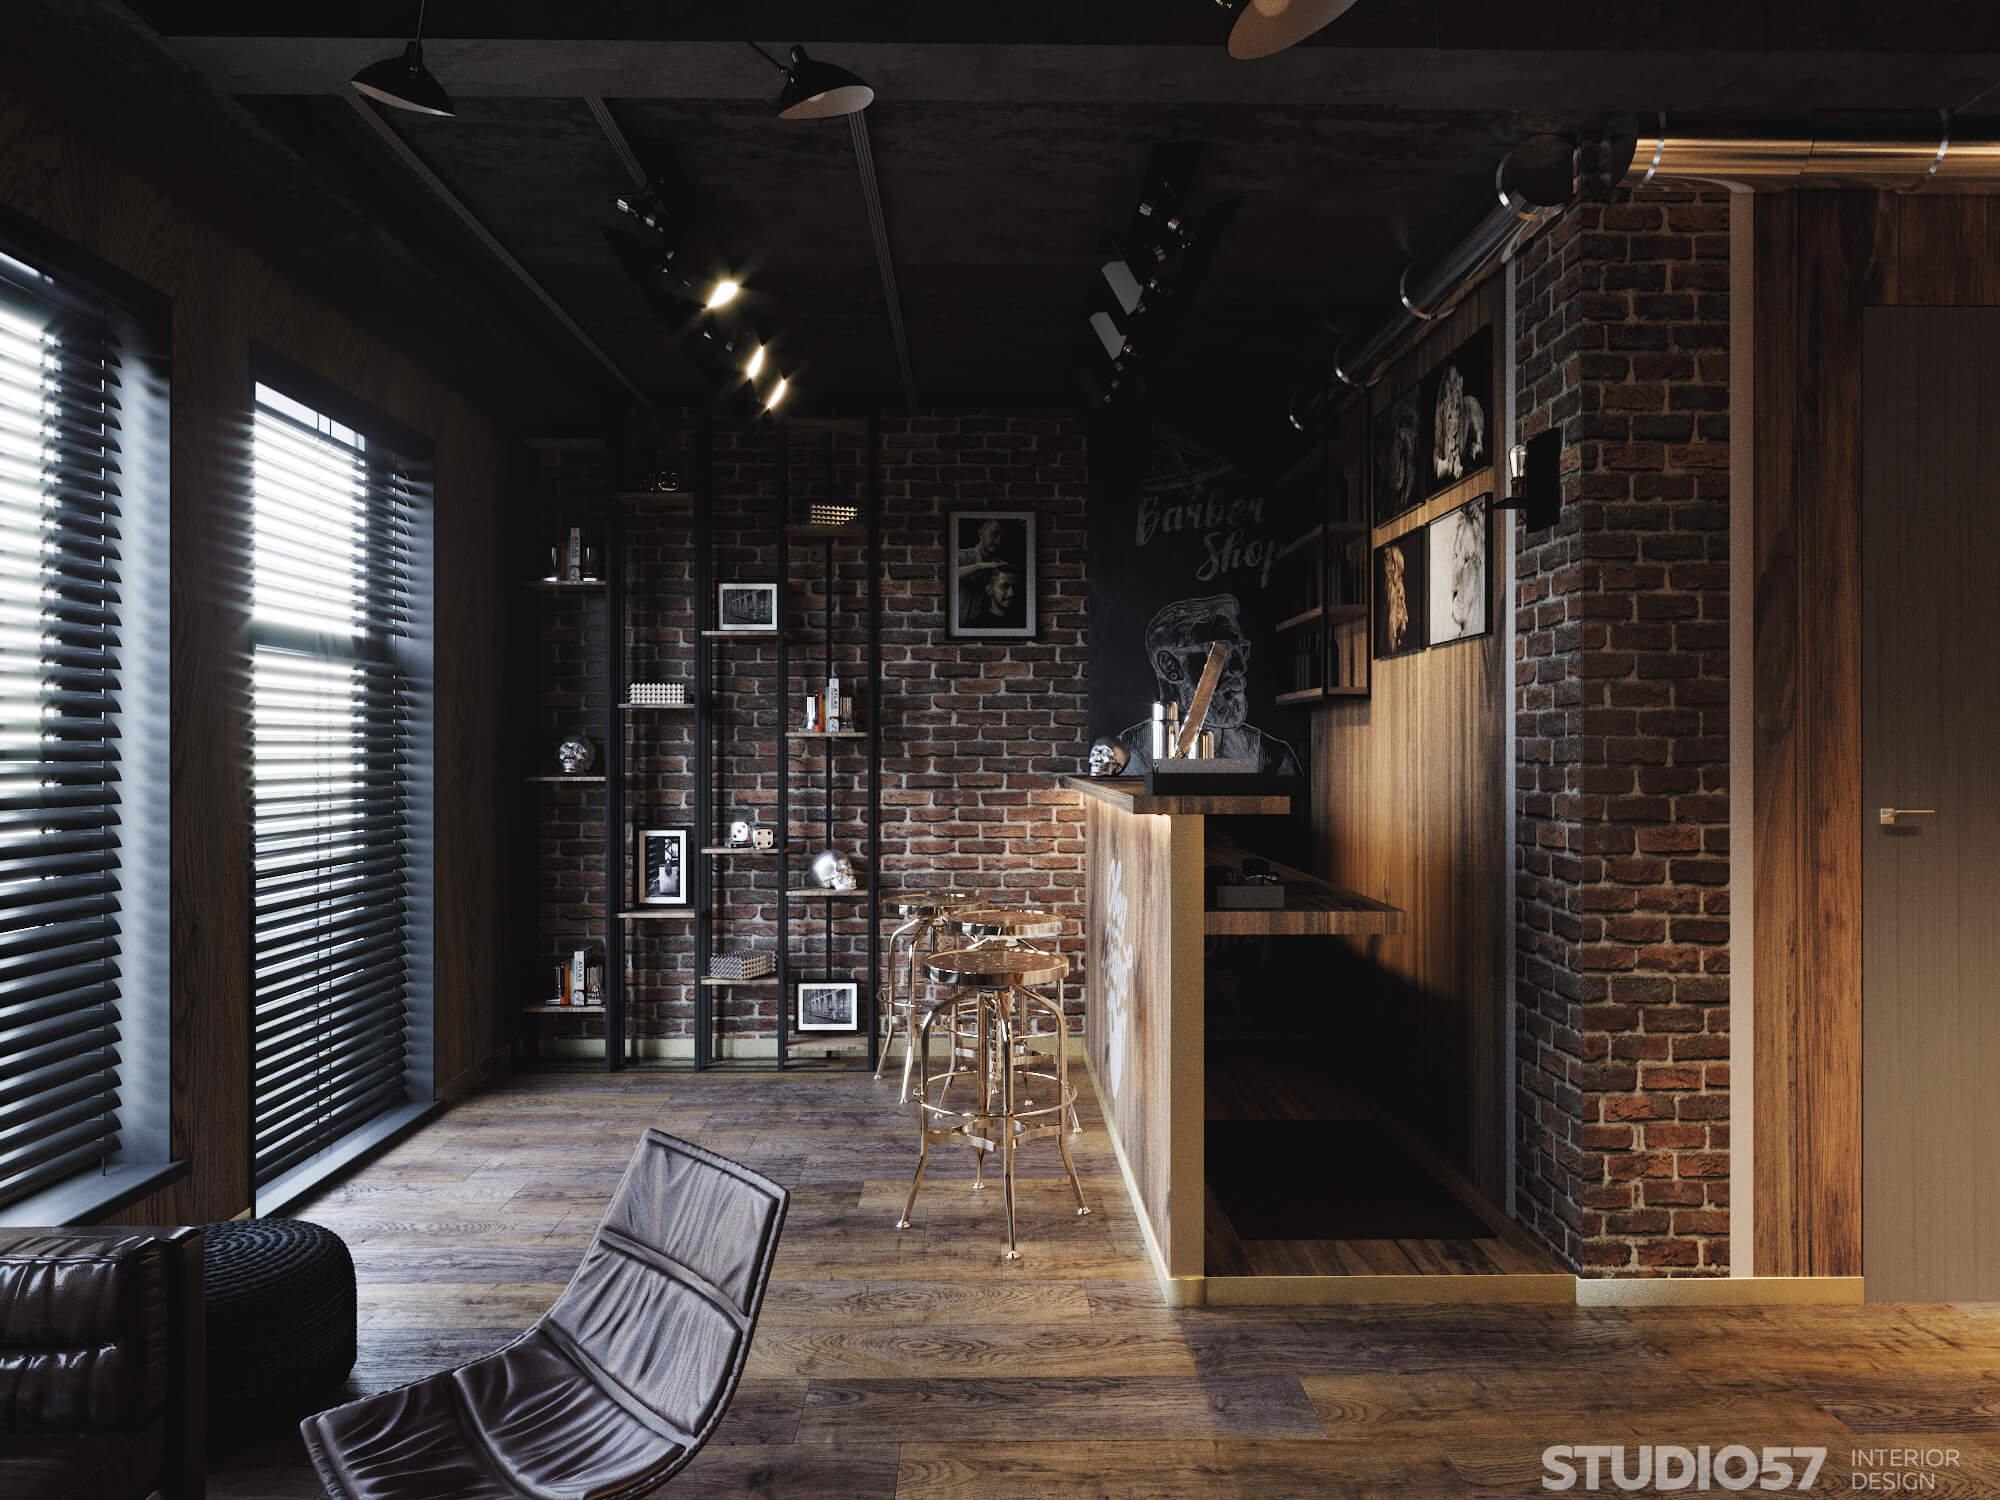 Male hall in hairdressing salon interior design photo